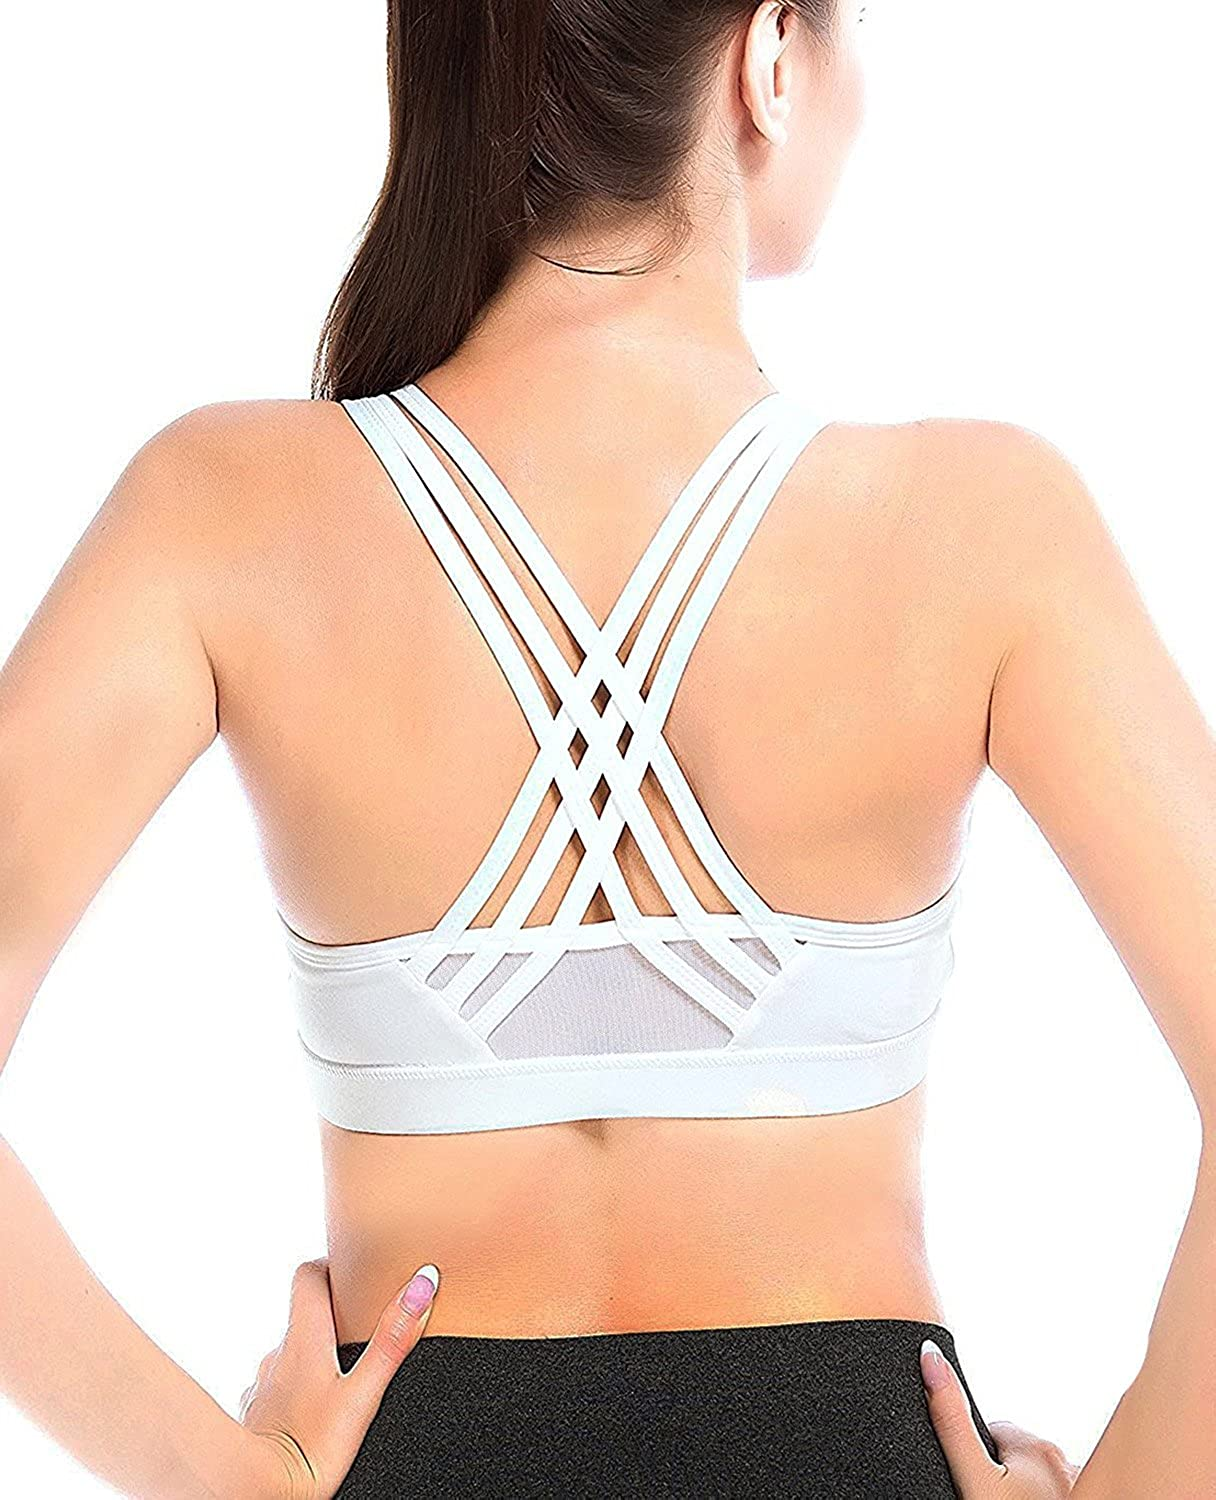 YIANNA Womens Sports Bra Padded Medium Support Cross Back Wireless Running Yoga Bra